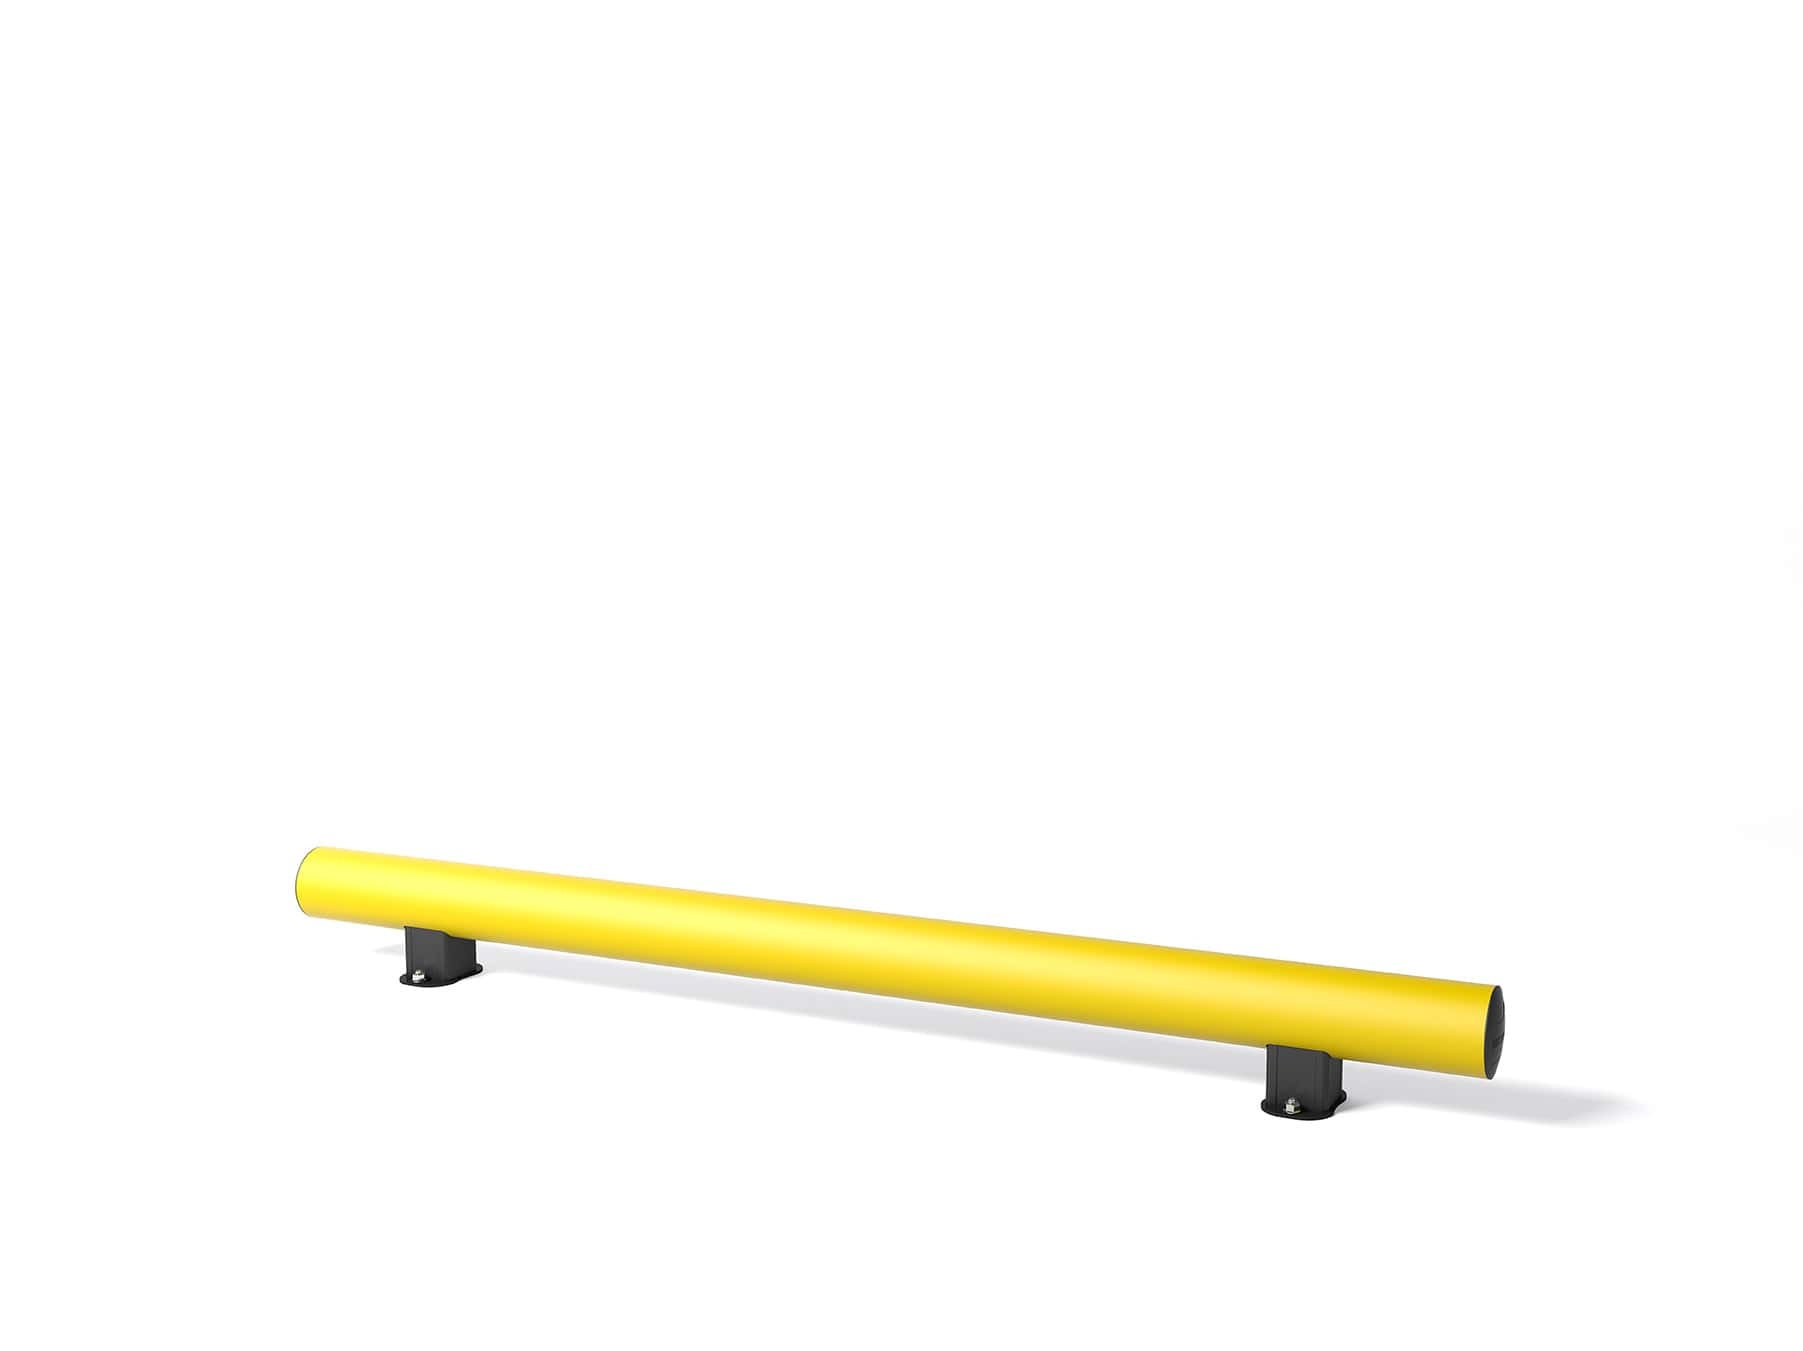 flex-impact-safety-traffic-barrier-tb_mini-min.jpg